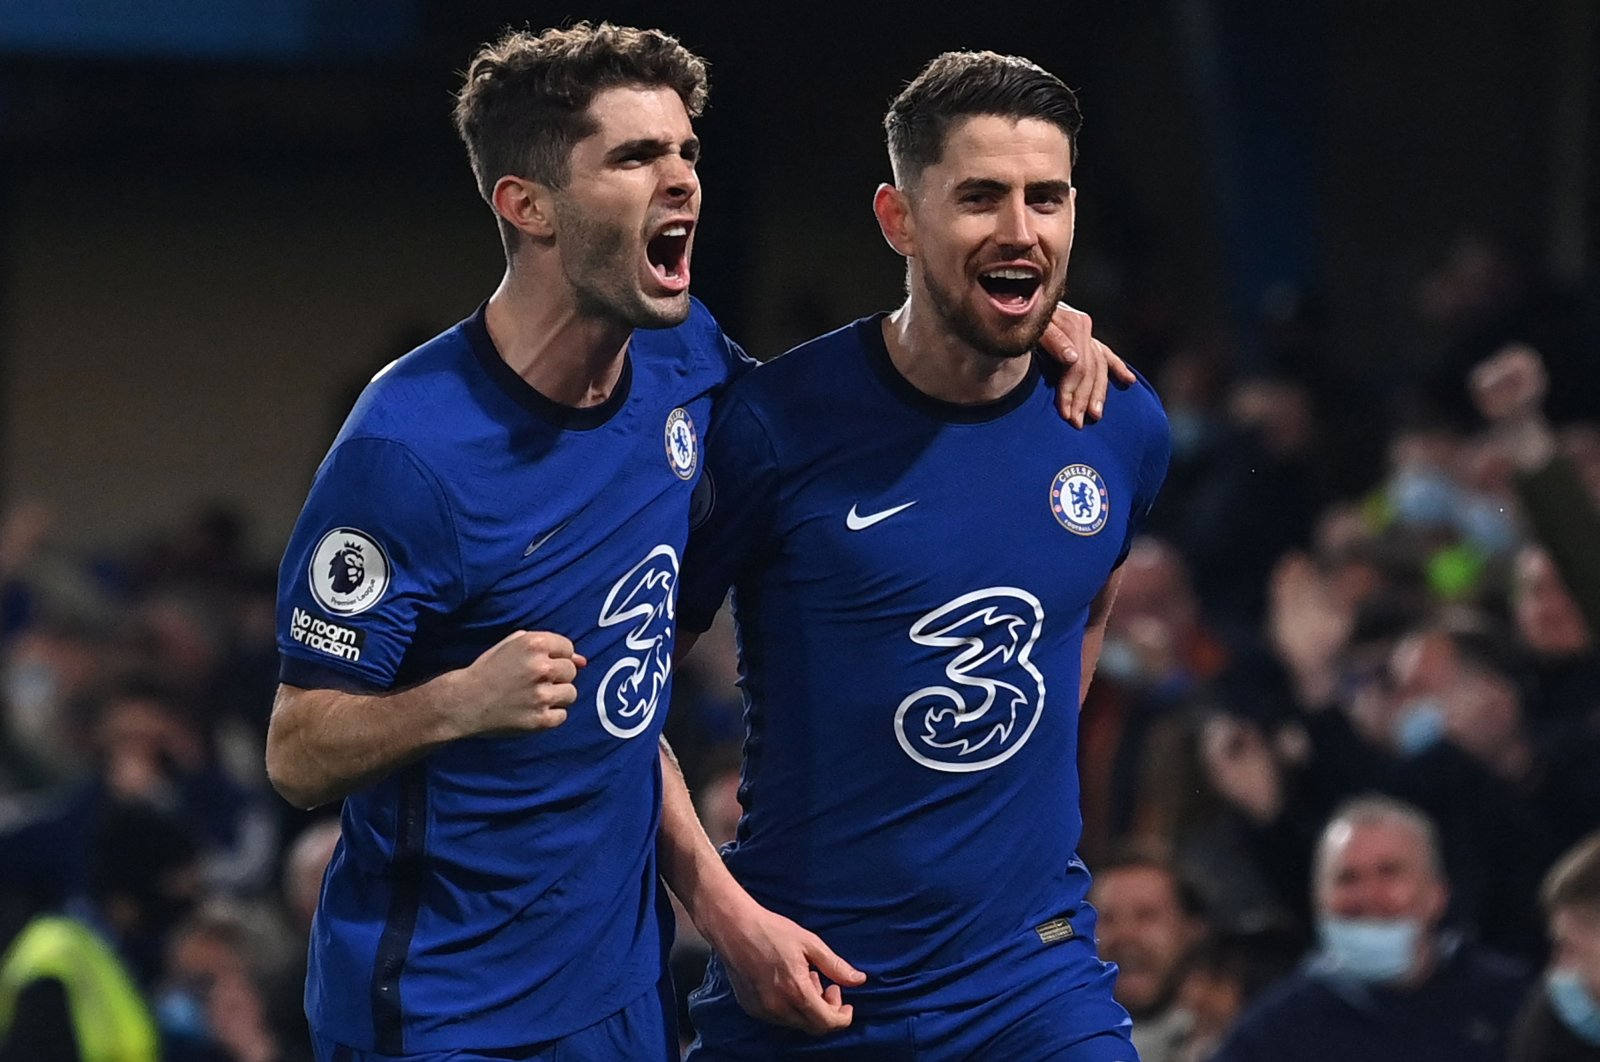 Chelsea midfielder Jorginho (R) celebrates with teammate Christian Pulisic after scoring his team's second goal against Leicester City at Stamford Bridge, London, Britain, May 18, 2021. (AFP Photo)